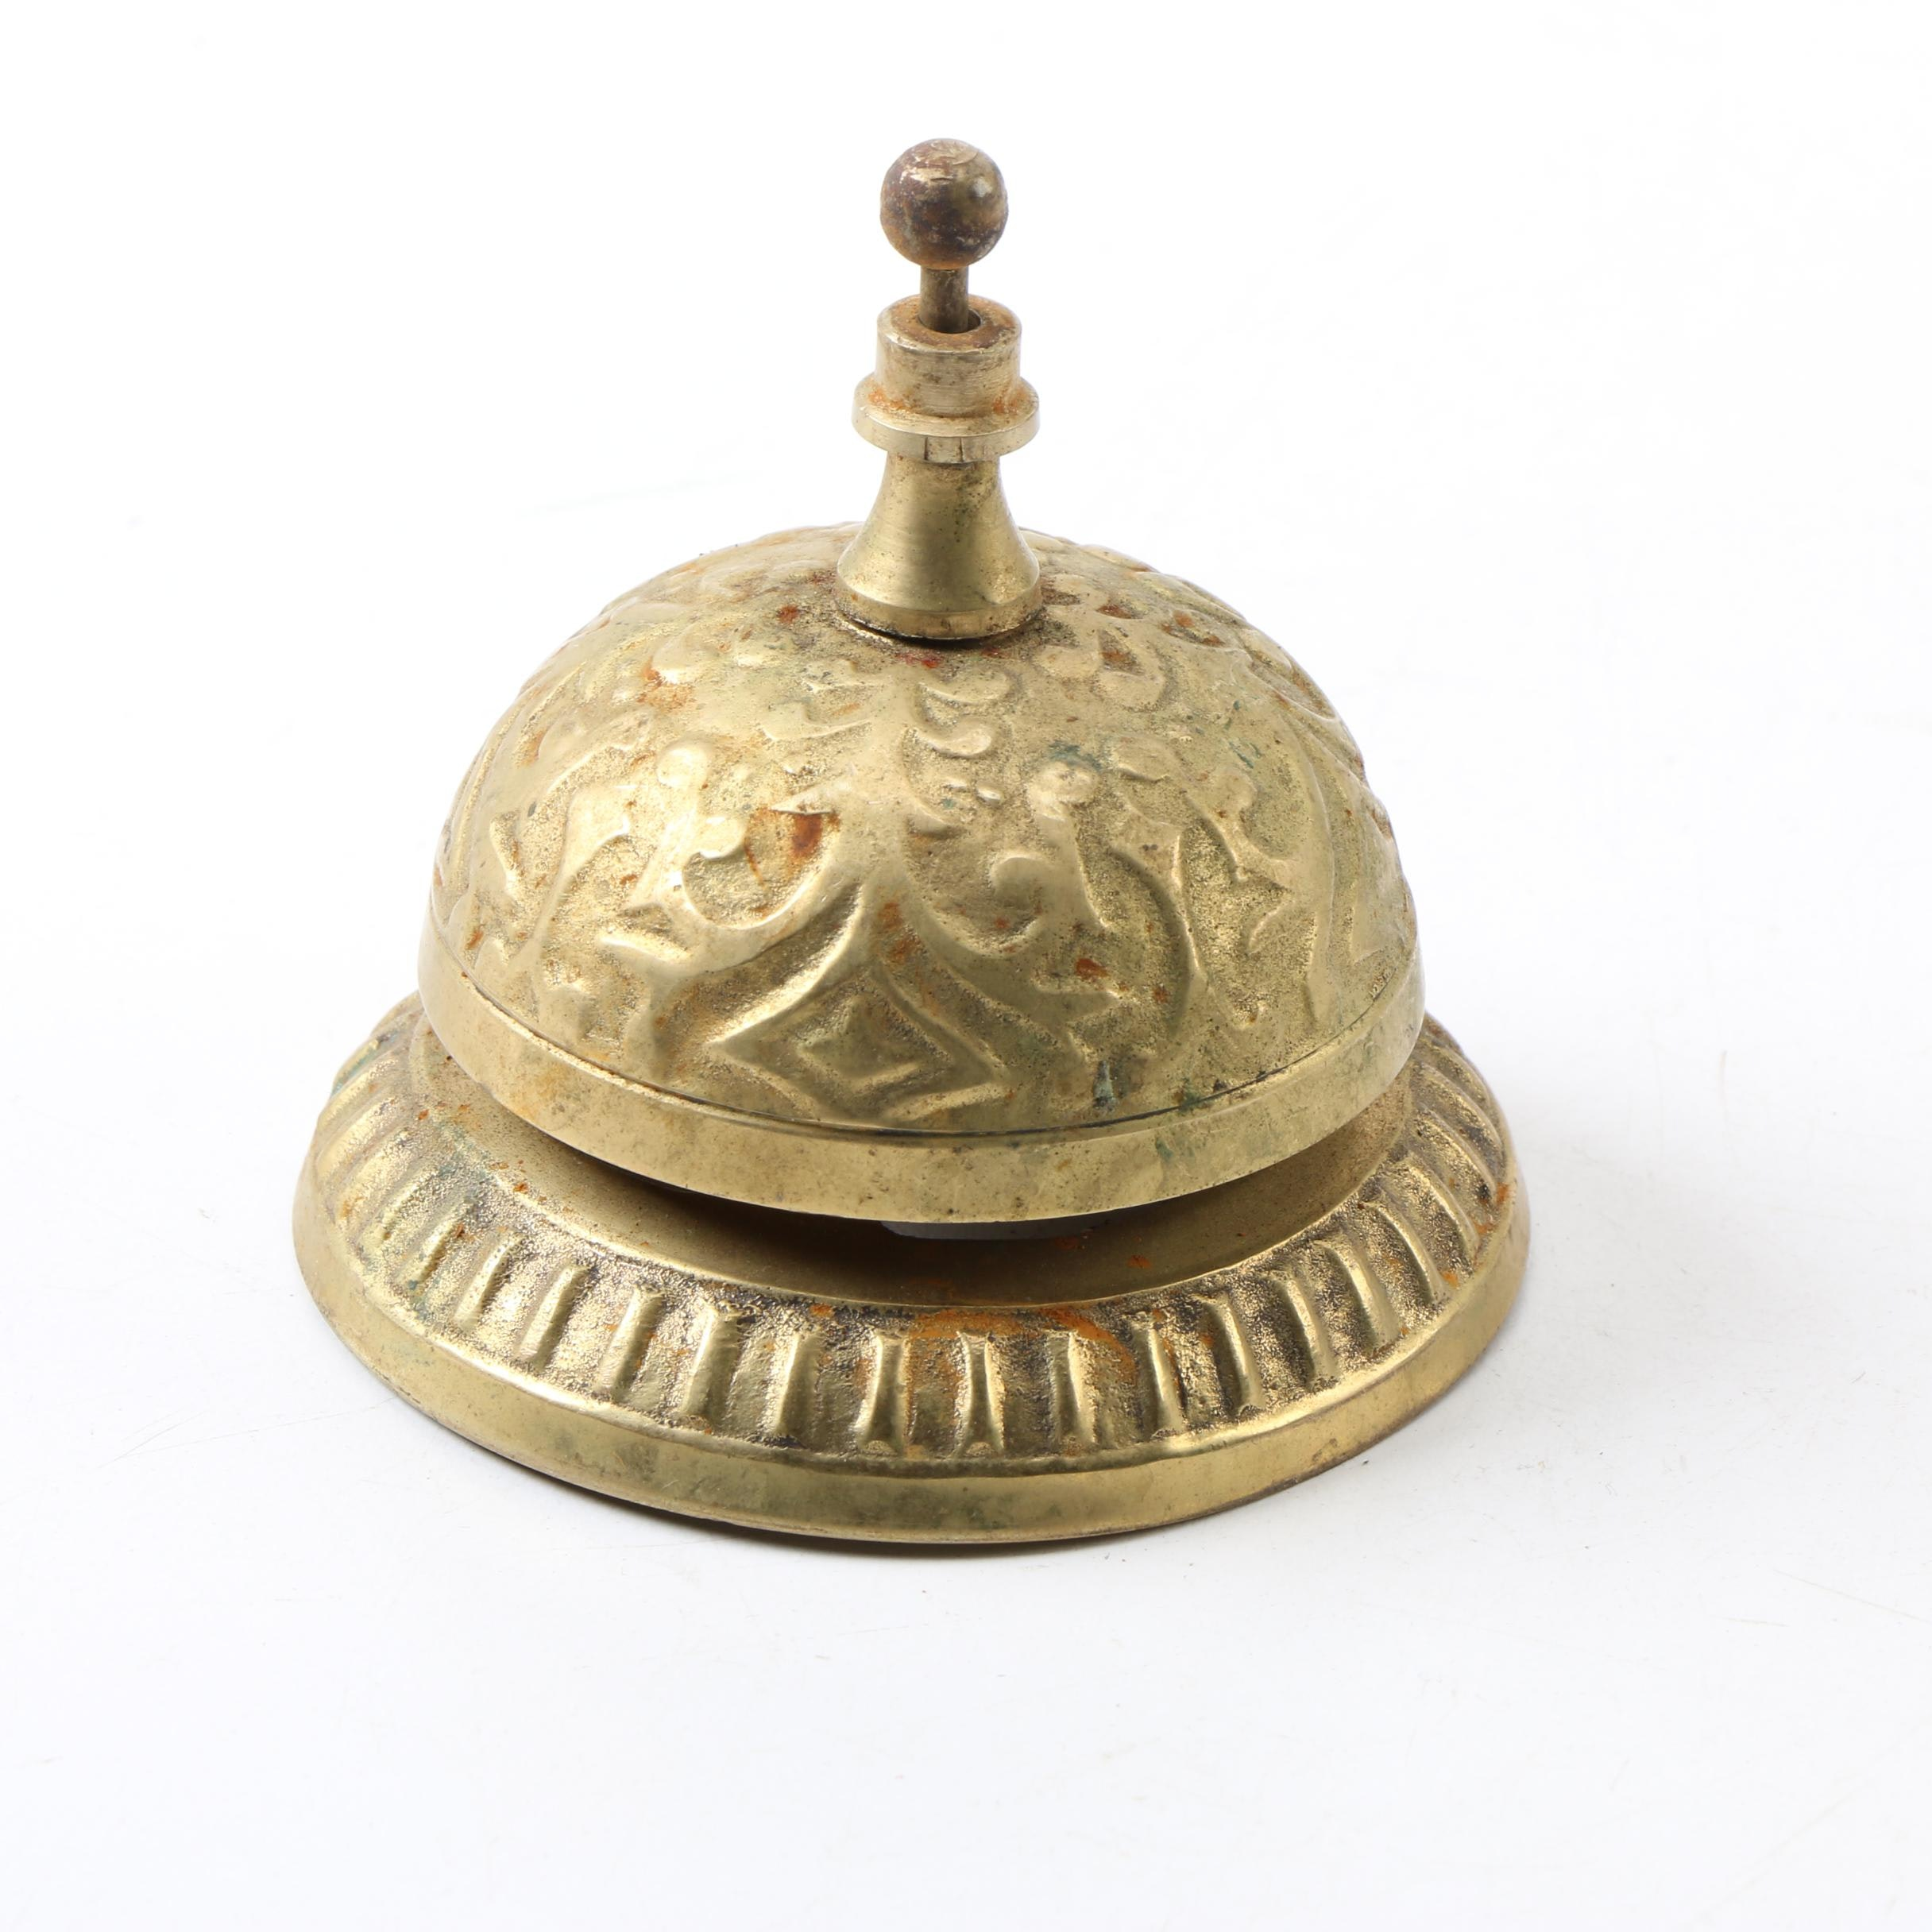 Vintage Embossed Metal Hotel Front Desk Counter Call Bell